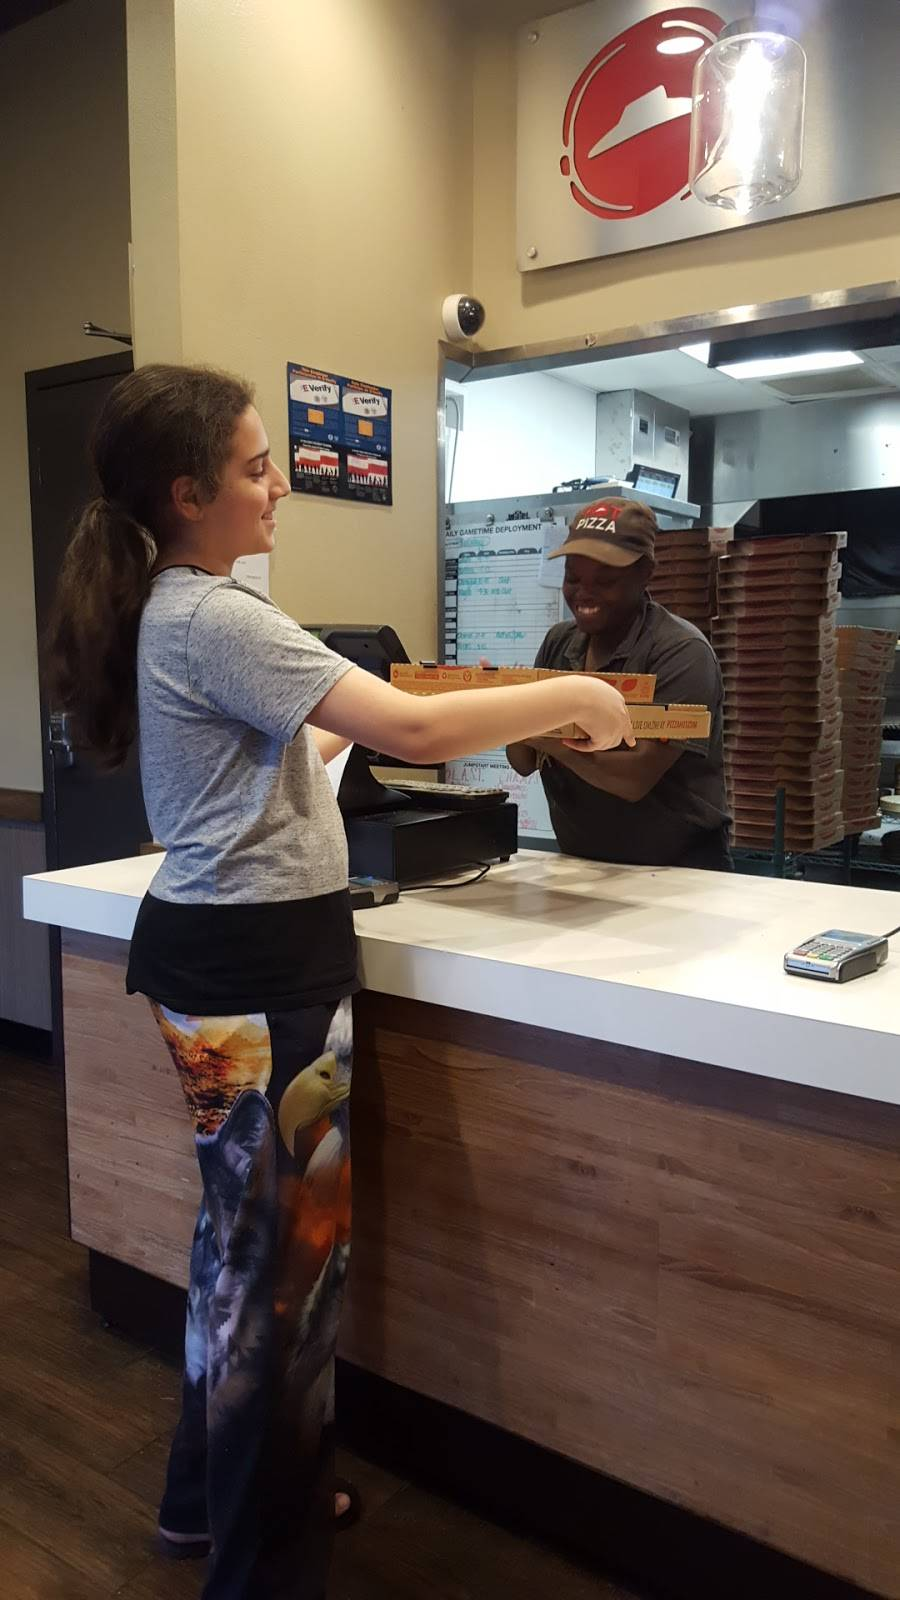 Pizza Hut - meal delivery  | Photo 9 of 10 | Address: 7310 Airline Hwy Suite H, Baton Rouge, LA 70805, USA | Phone: (225) 355-7006